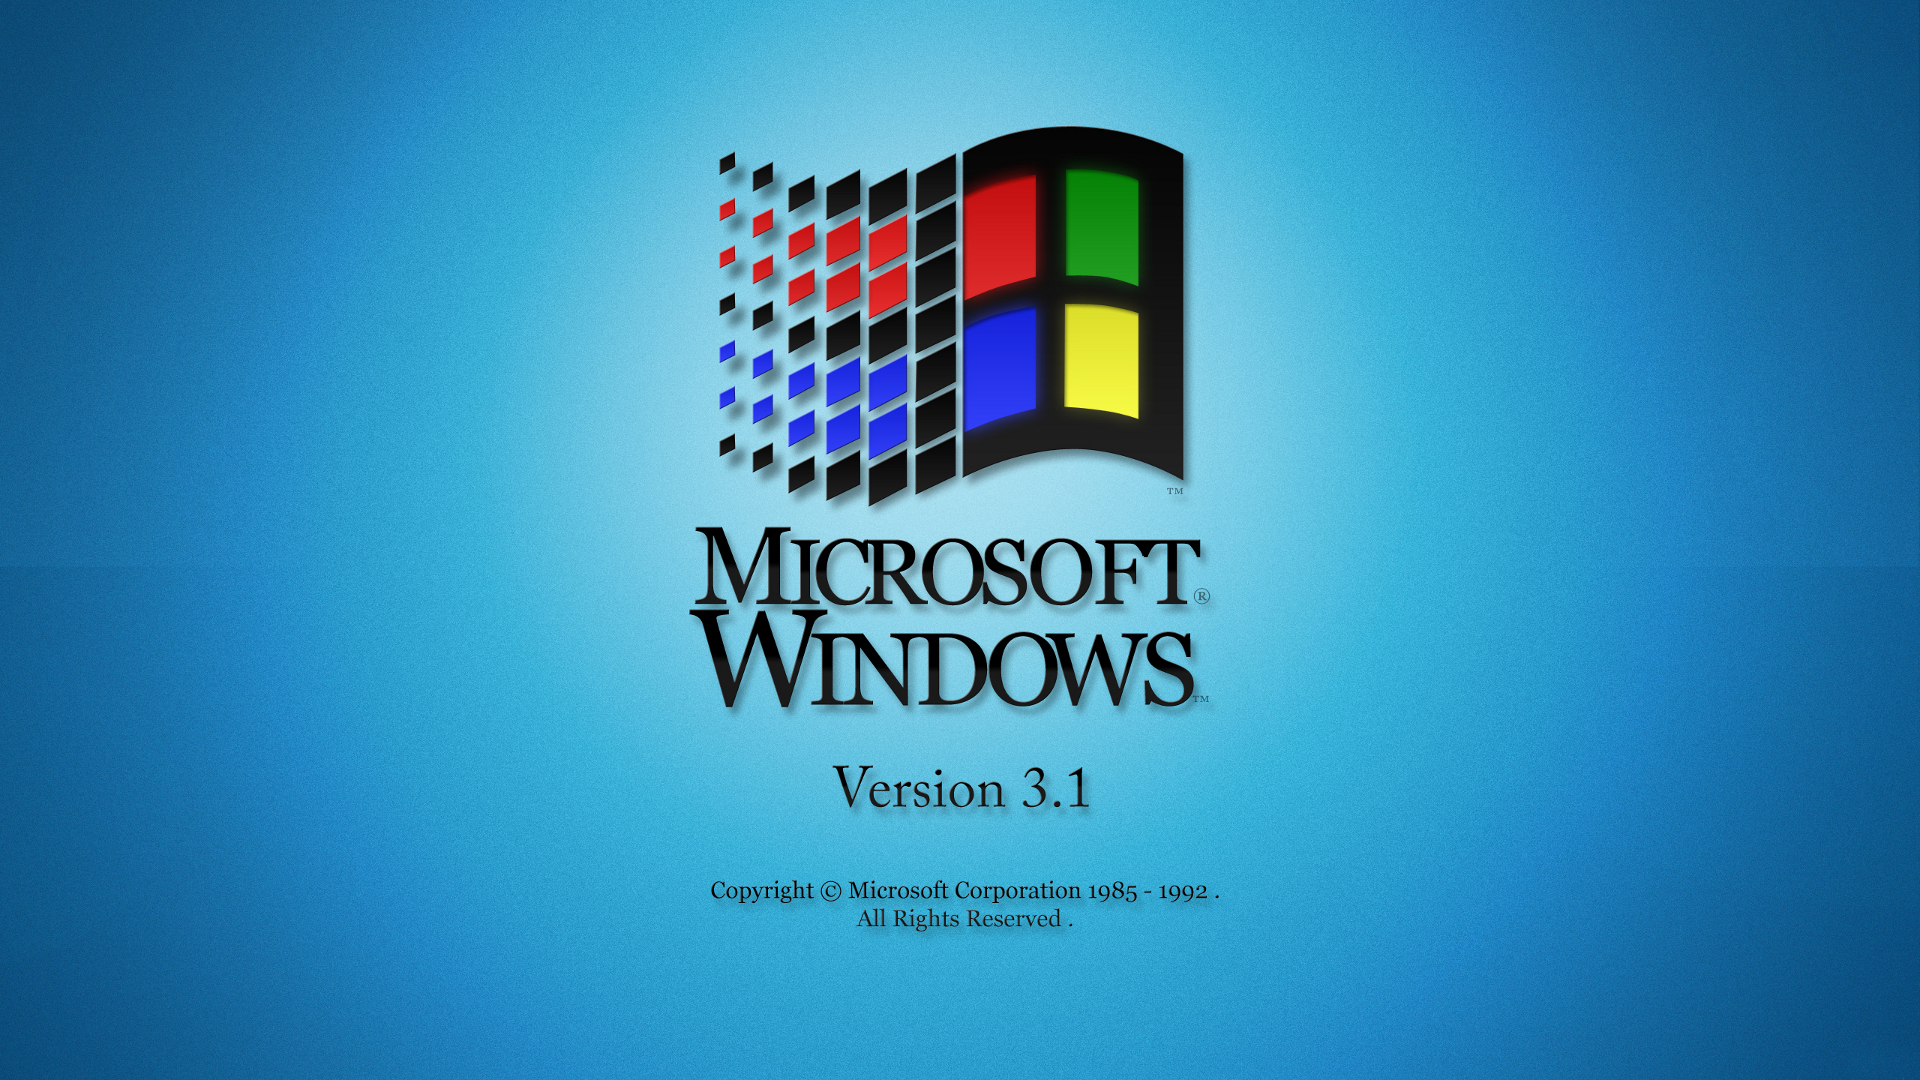 Old Windows Wallpaper